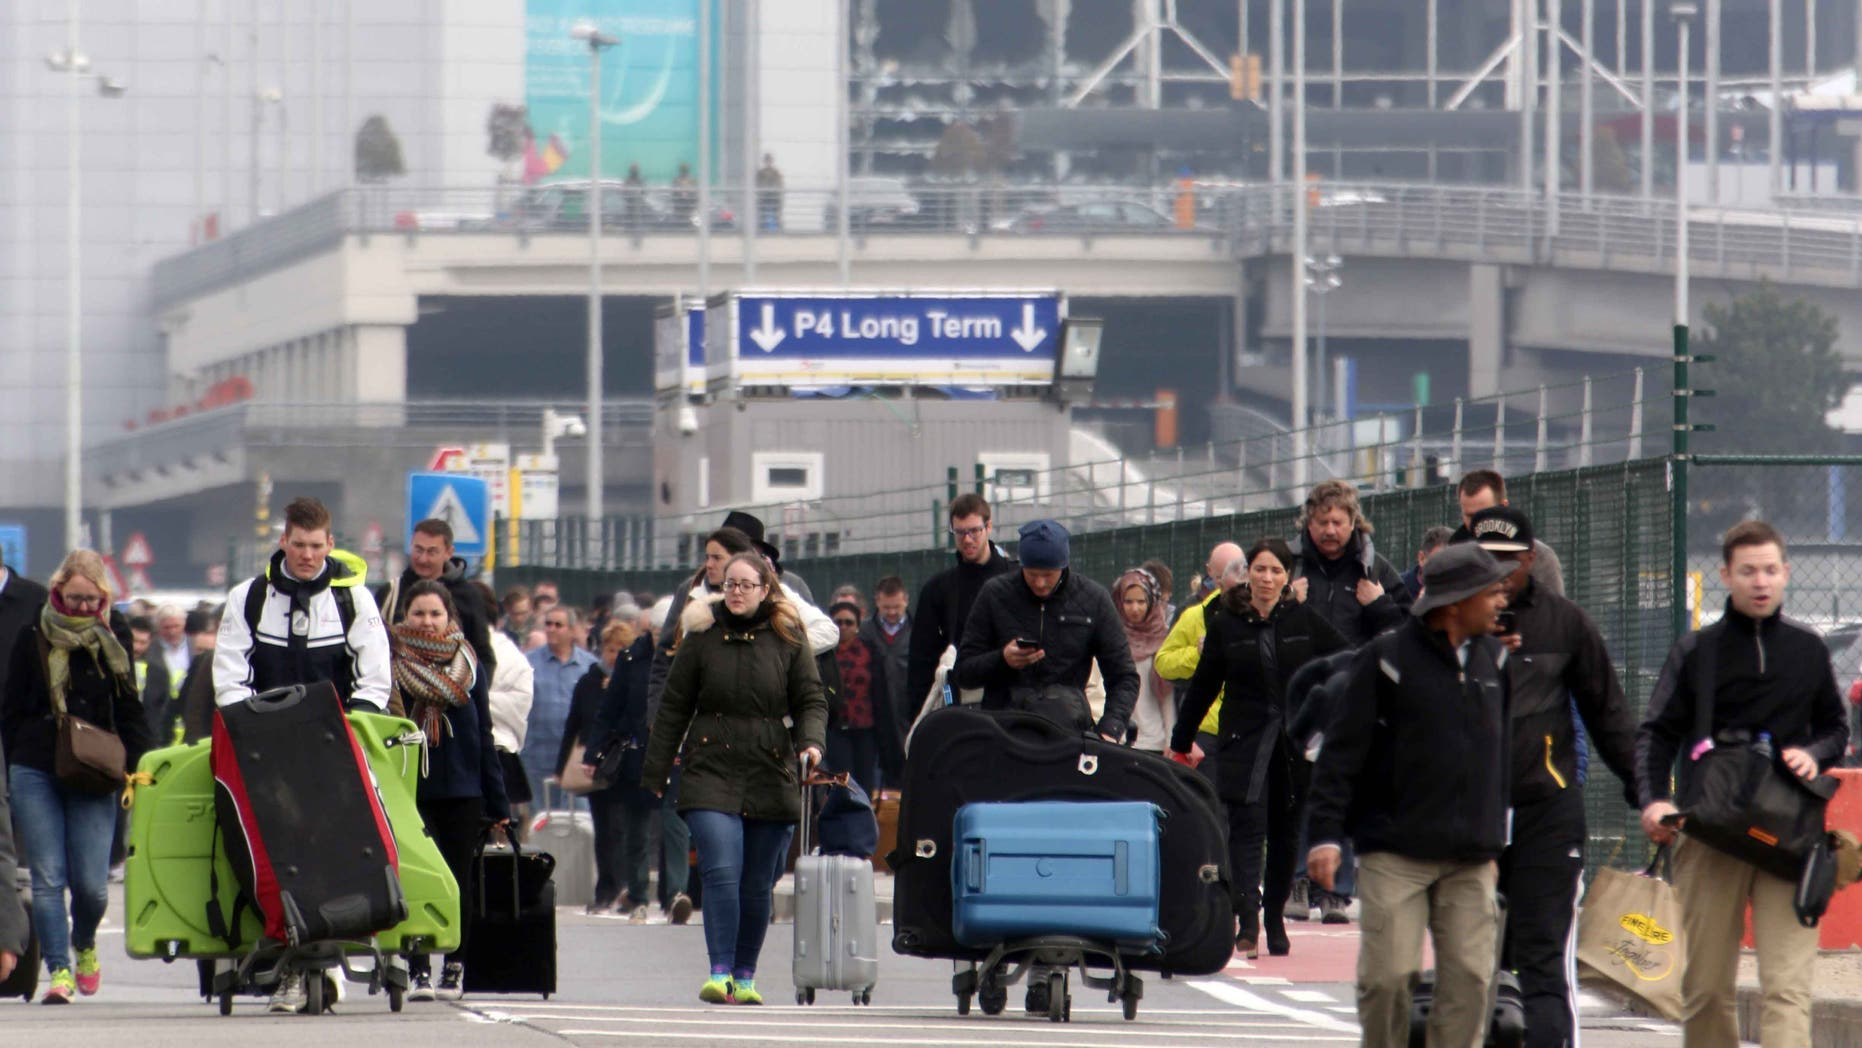 Passengers are evacuated from Zaventem Bruxelles International Airport on March 22, 2016 in Brussels.